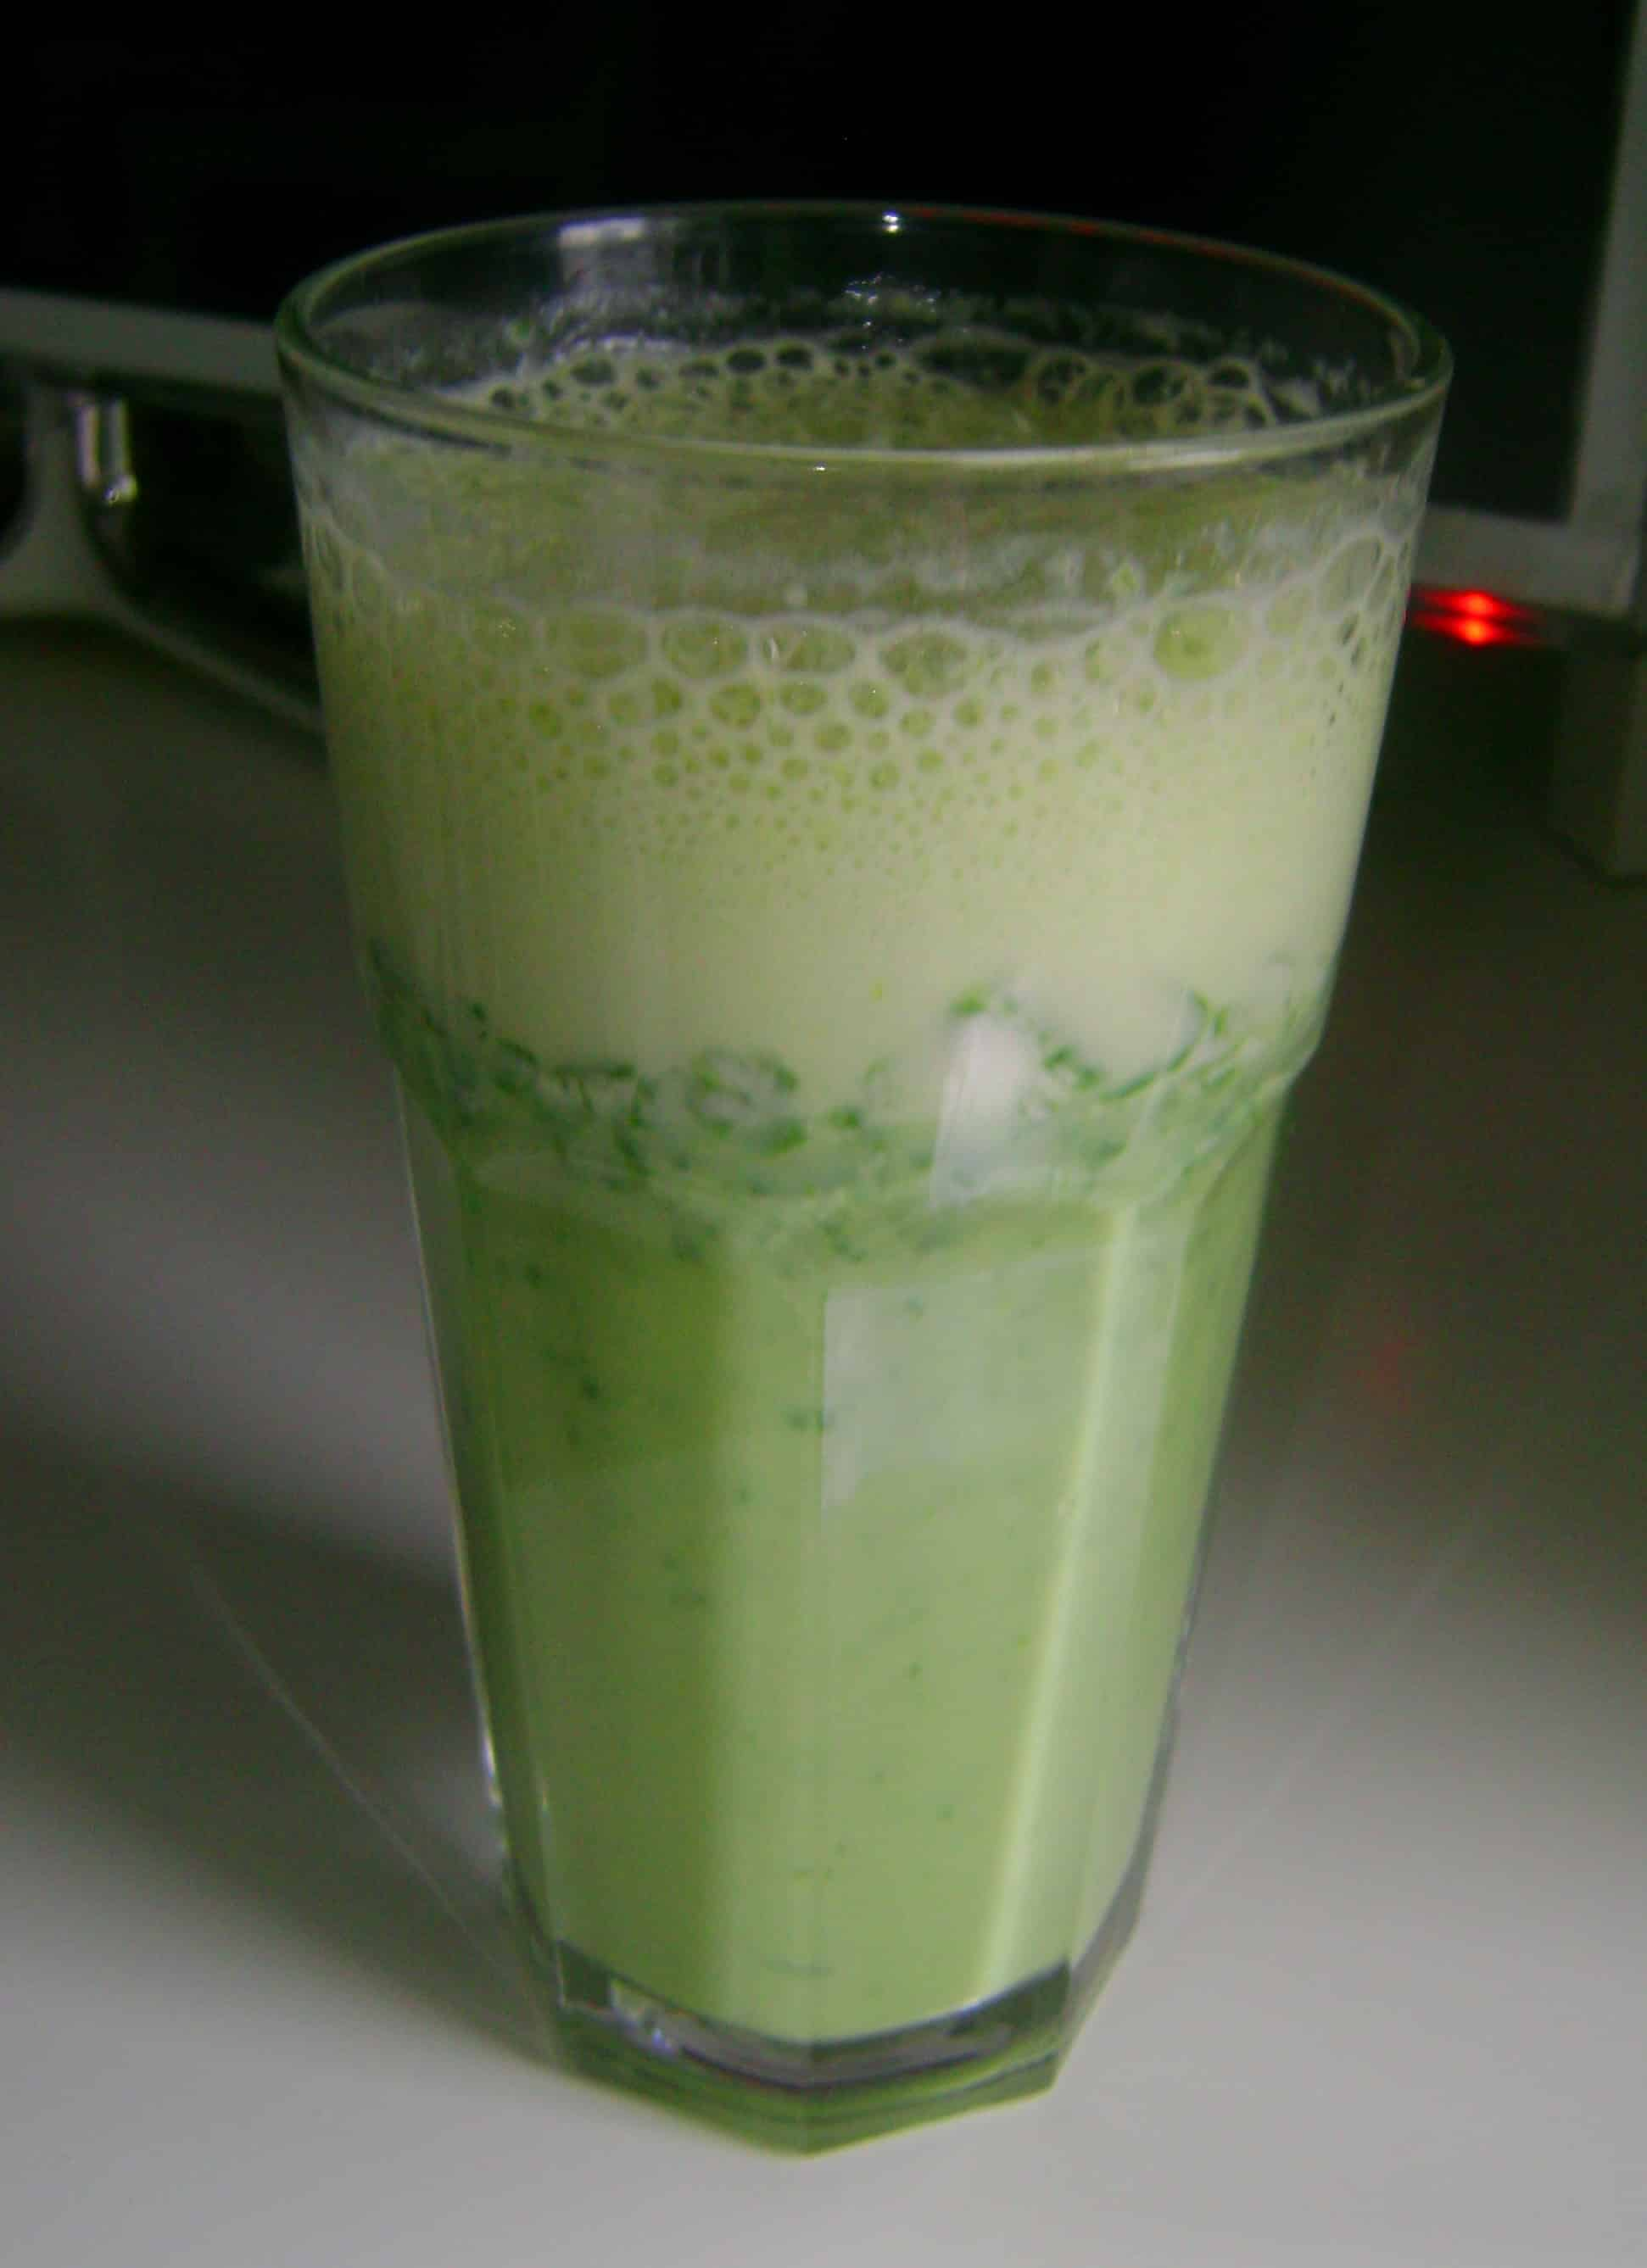 Spinach shake for breakfast